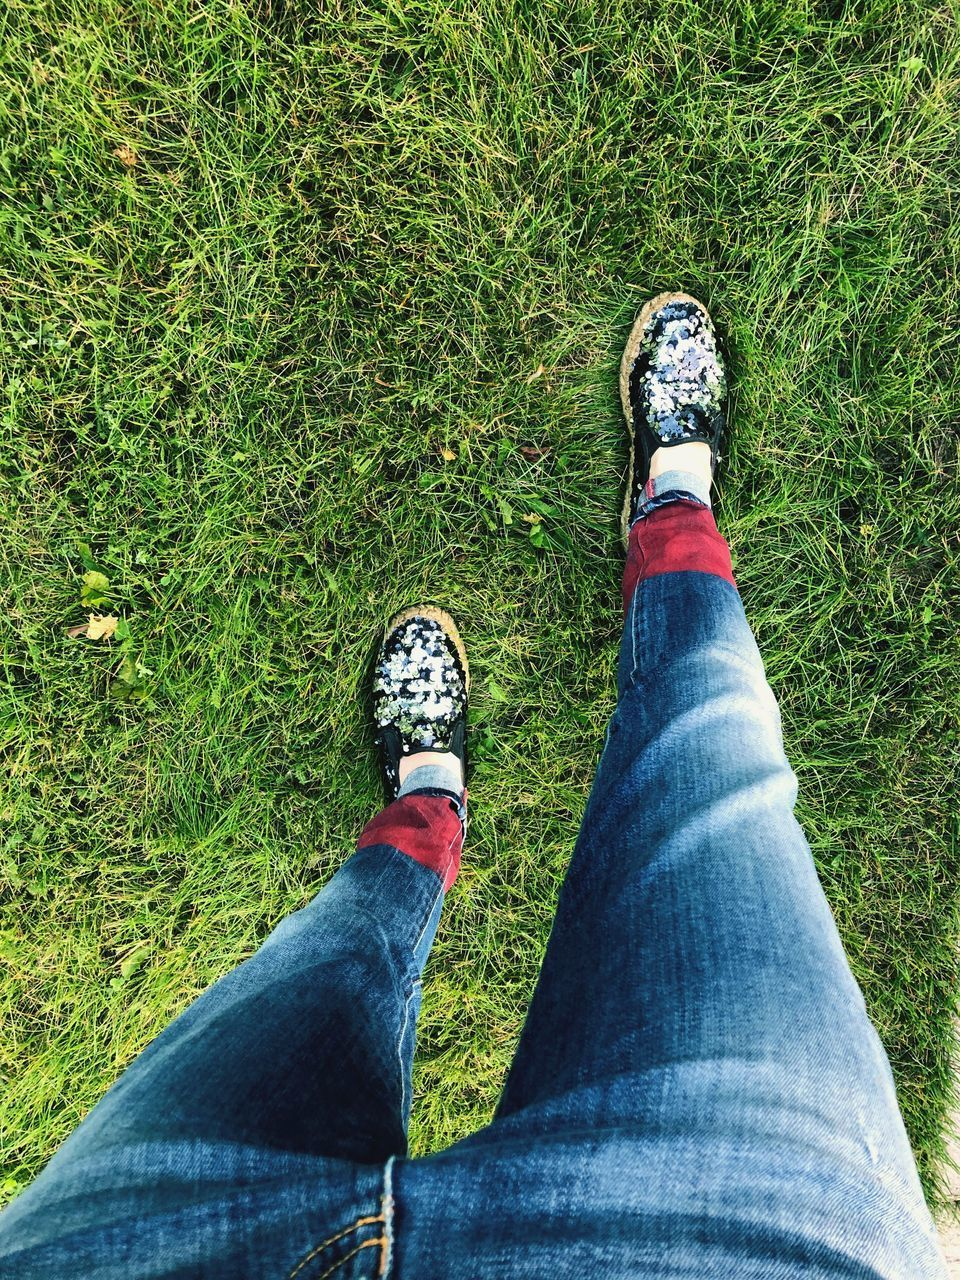 human leg, low section, personal perspective, grass, human body part, body part, jeans, plant, shoe, casual clothing, lifestyles, one person, real people, high angle view, land, nature, day, leisure activity, green color, outdoors, limb, human limb, human foot, sock